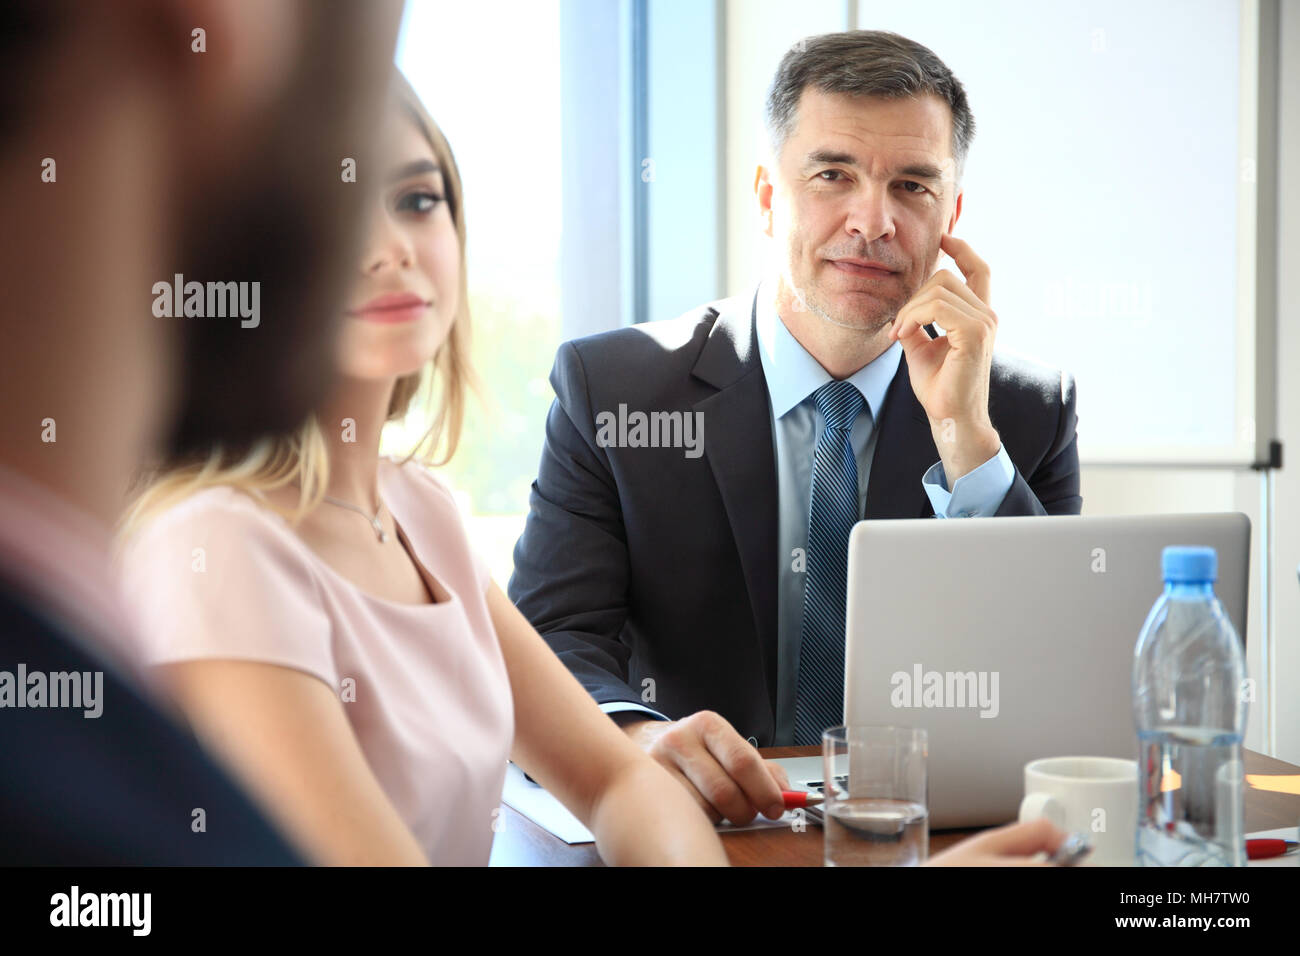 Portrait of a handsome businessman, blurred colleagues in the background. - Stock Image